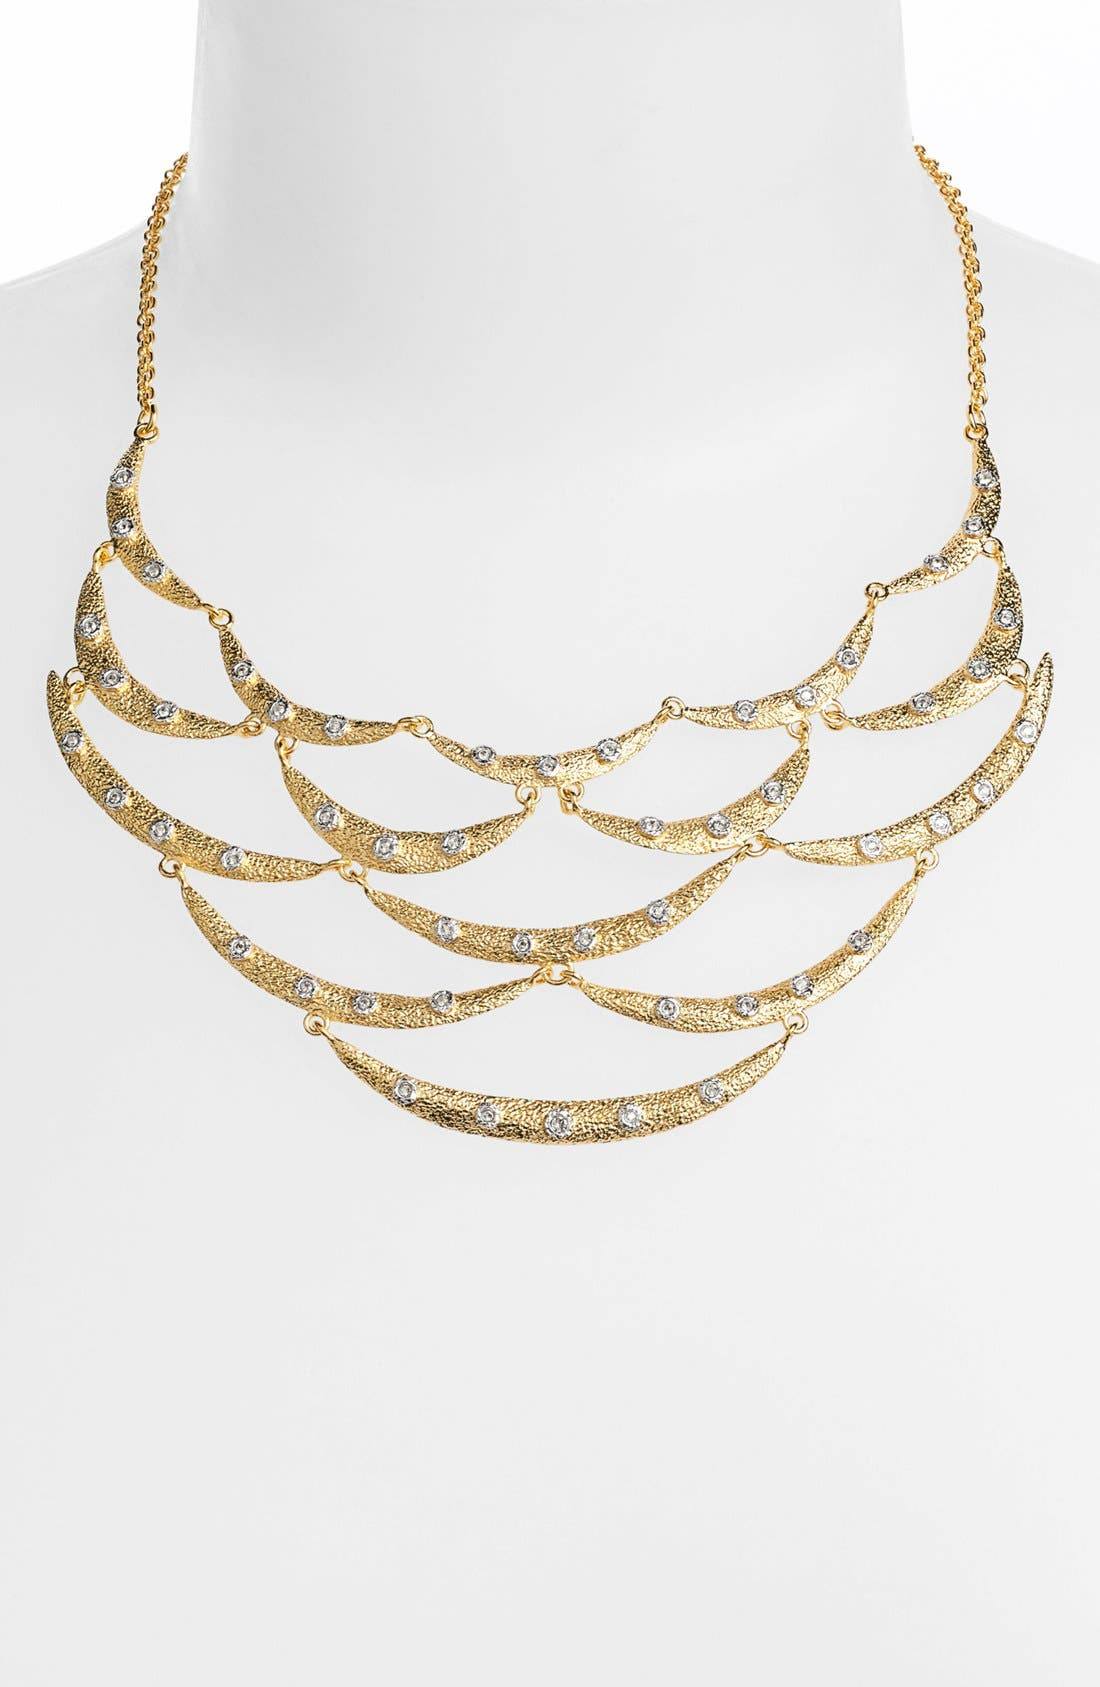 Main Image - Alexis Bittar 'Elements' Articulated Bib Necklace